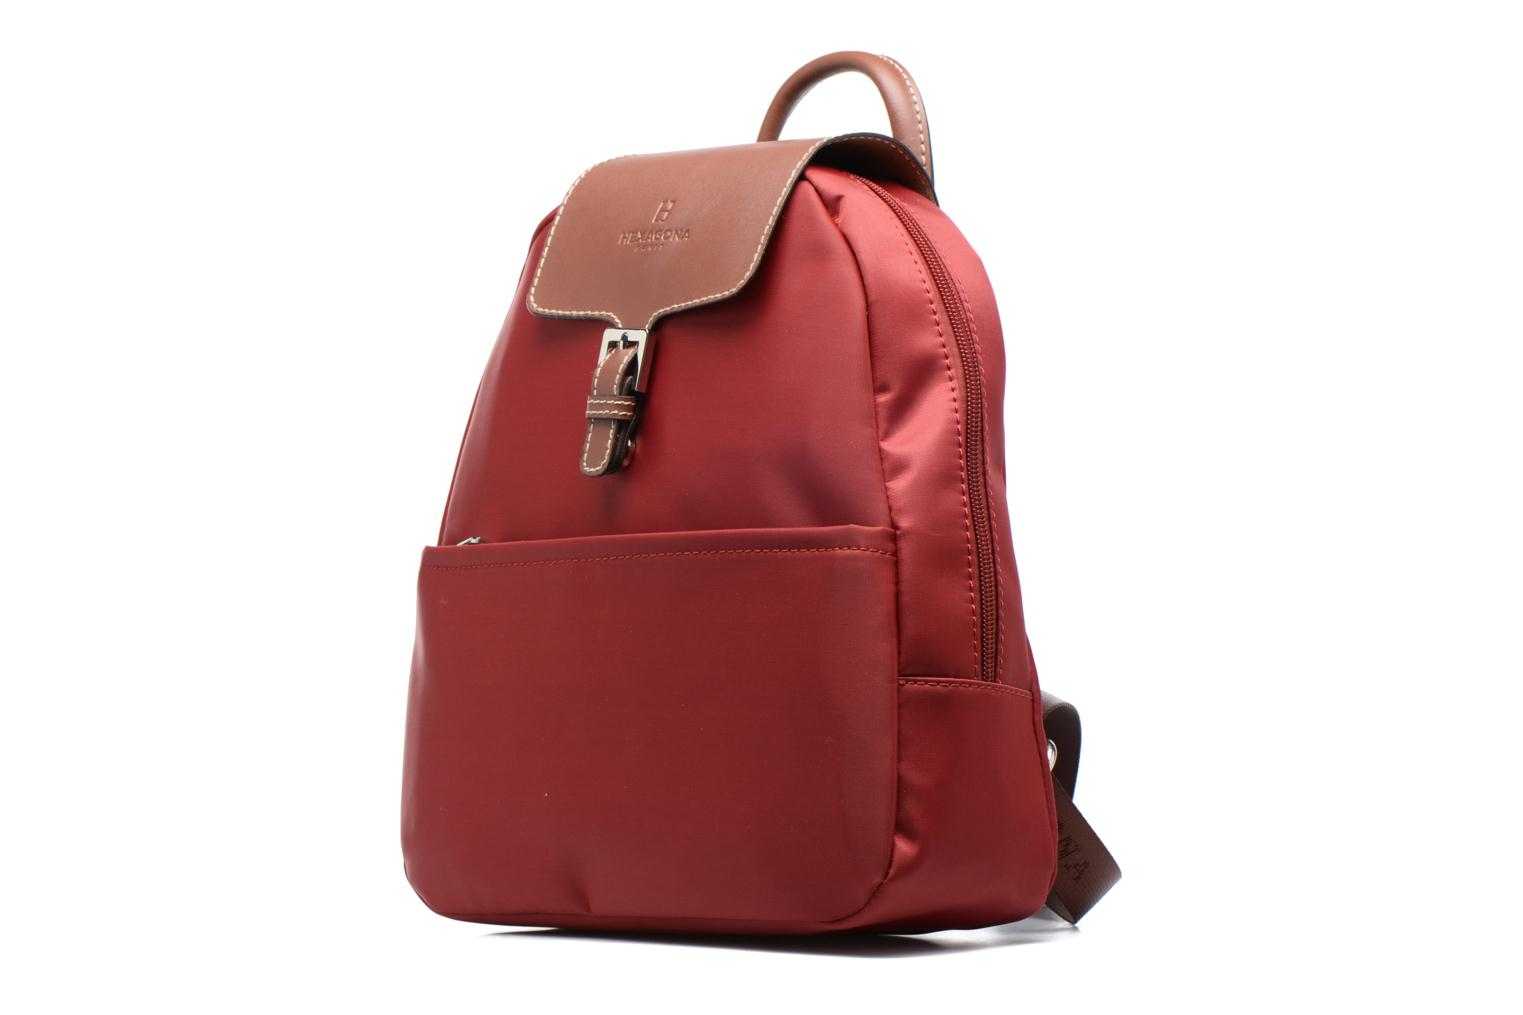 Rouge à nylon Hexagona Sac dos Iwqx5X50T